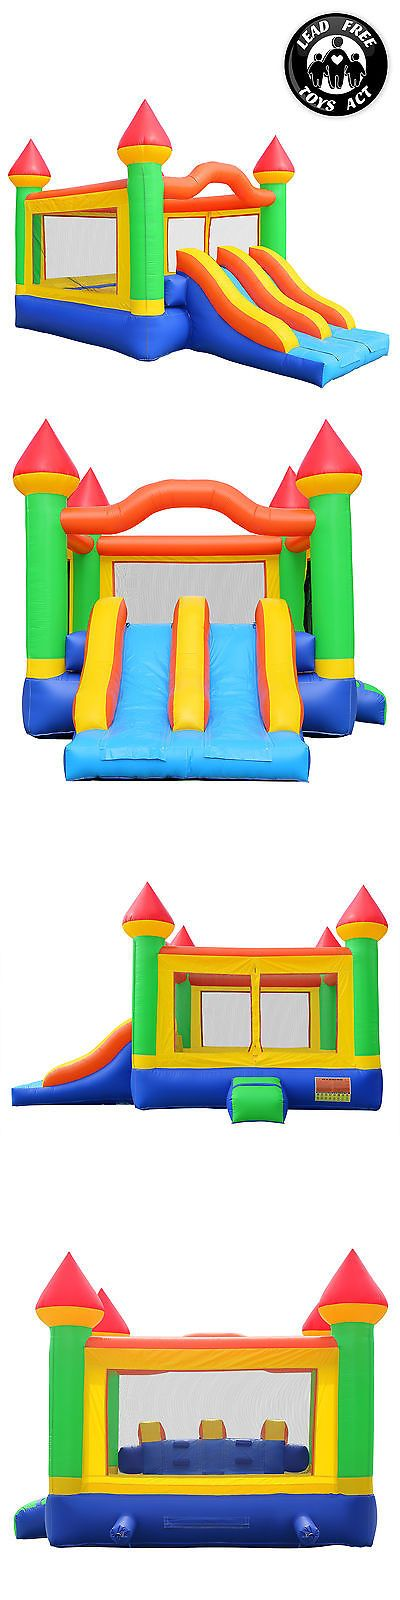 Inflatable Bouncers 145979: Commercial Bounce House 100% Pvc Mega Double Slide Climbing Wall Inflatable Only -> BUY IT NOW ONLY: $759.99 on eBay!